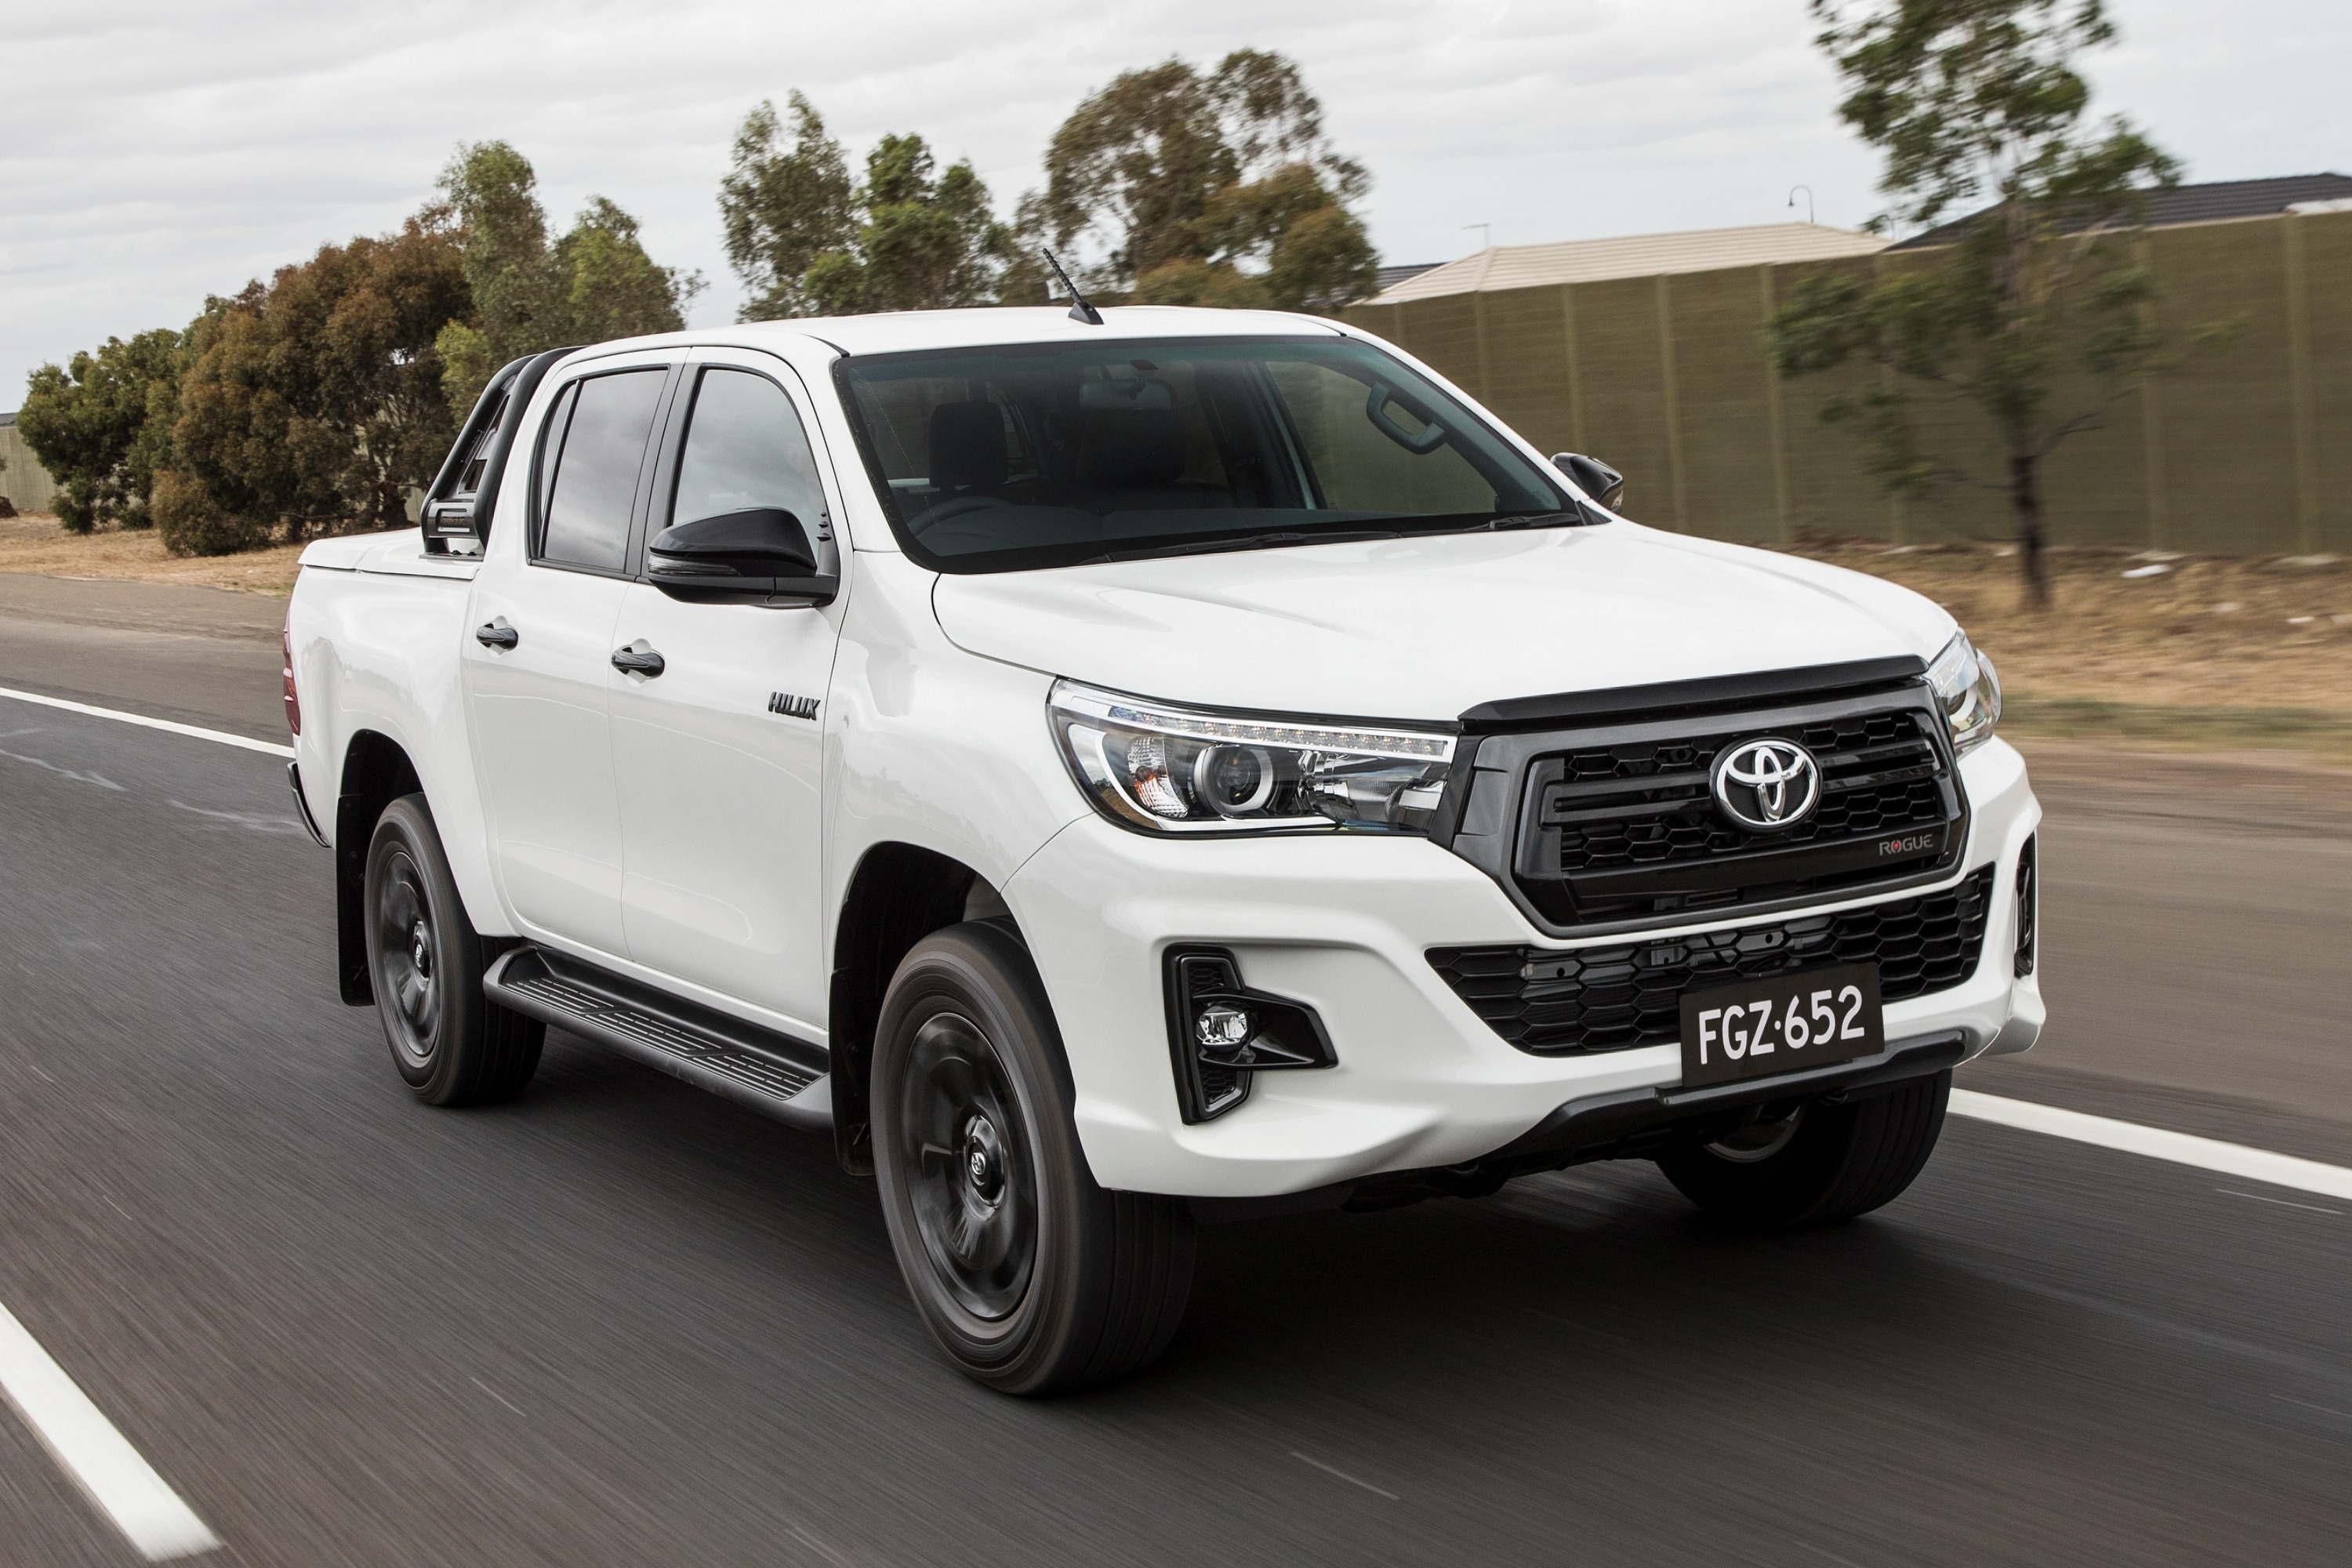 Toyota HiLux Rogue 2019 Review - Ute Guide